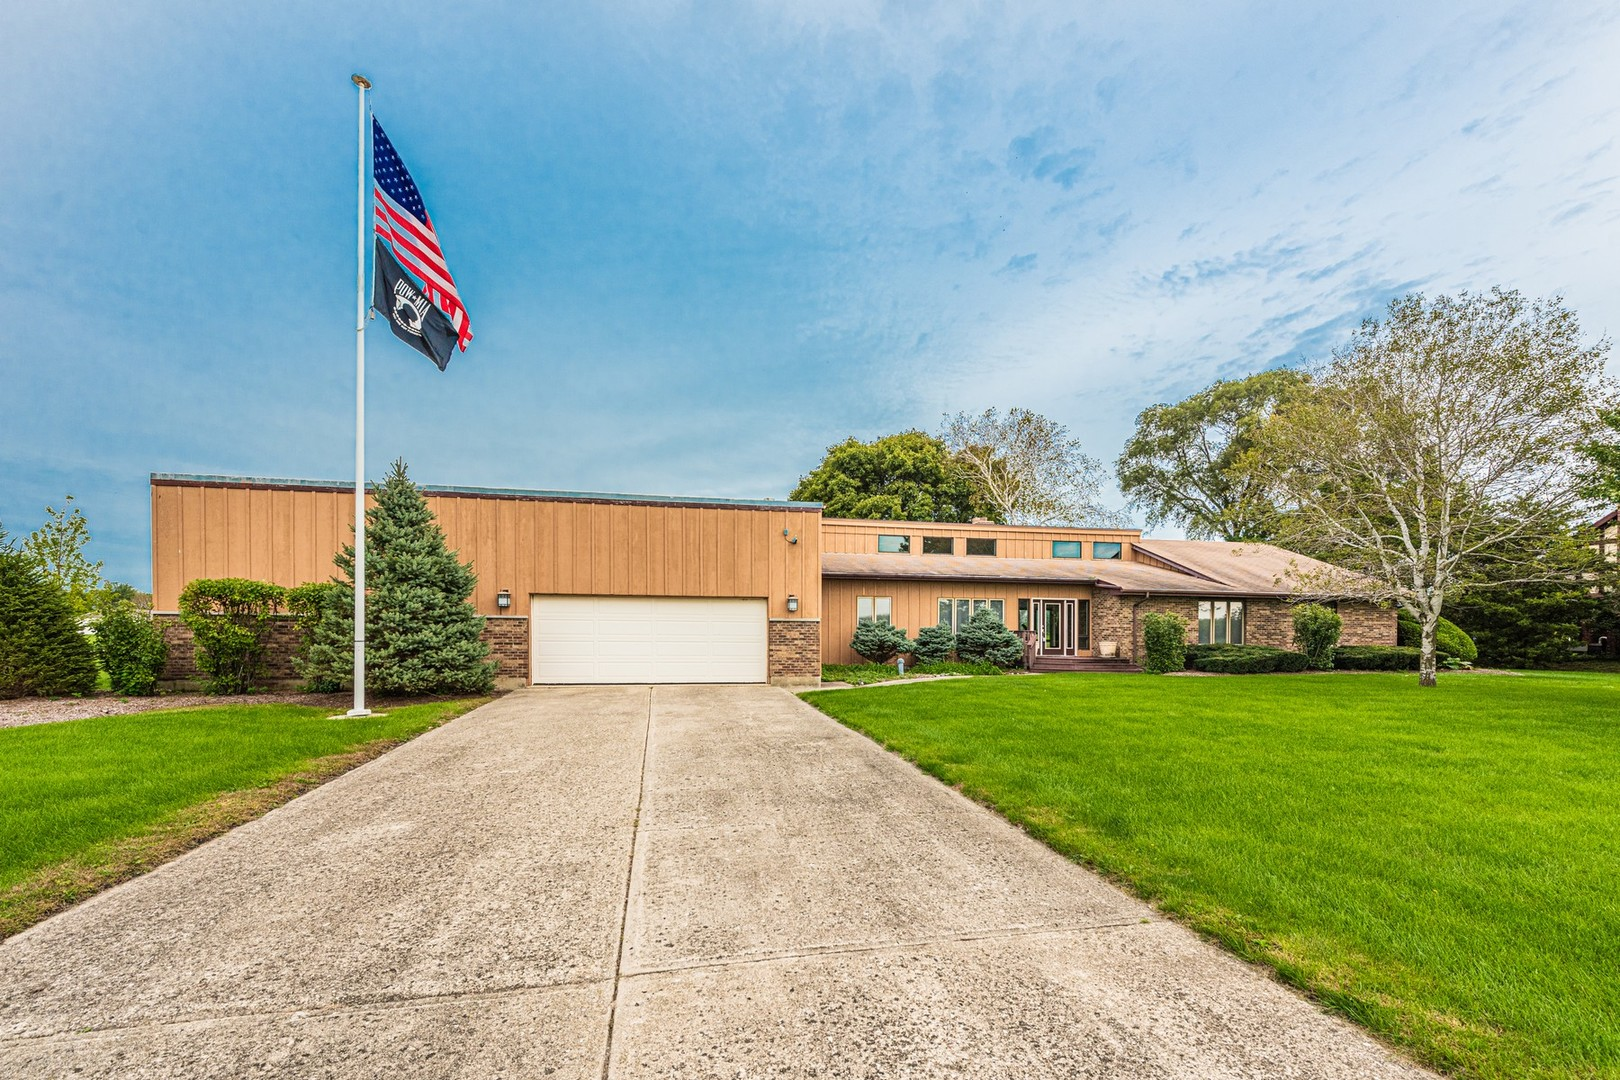 Photo for 48W528 Chandelle Drive, Hampshire, IL 60140 (MLS # 10879207)